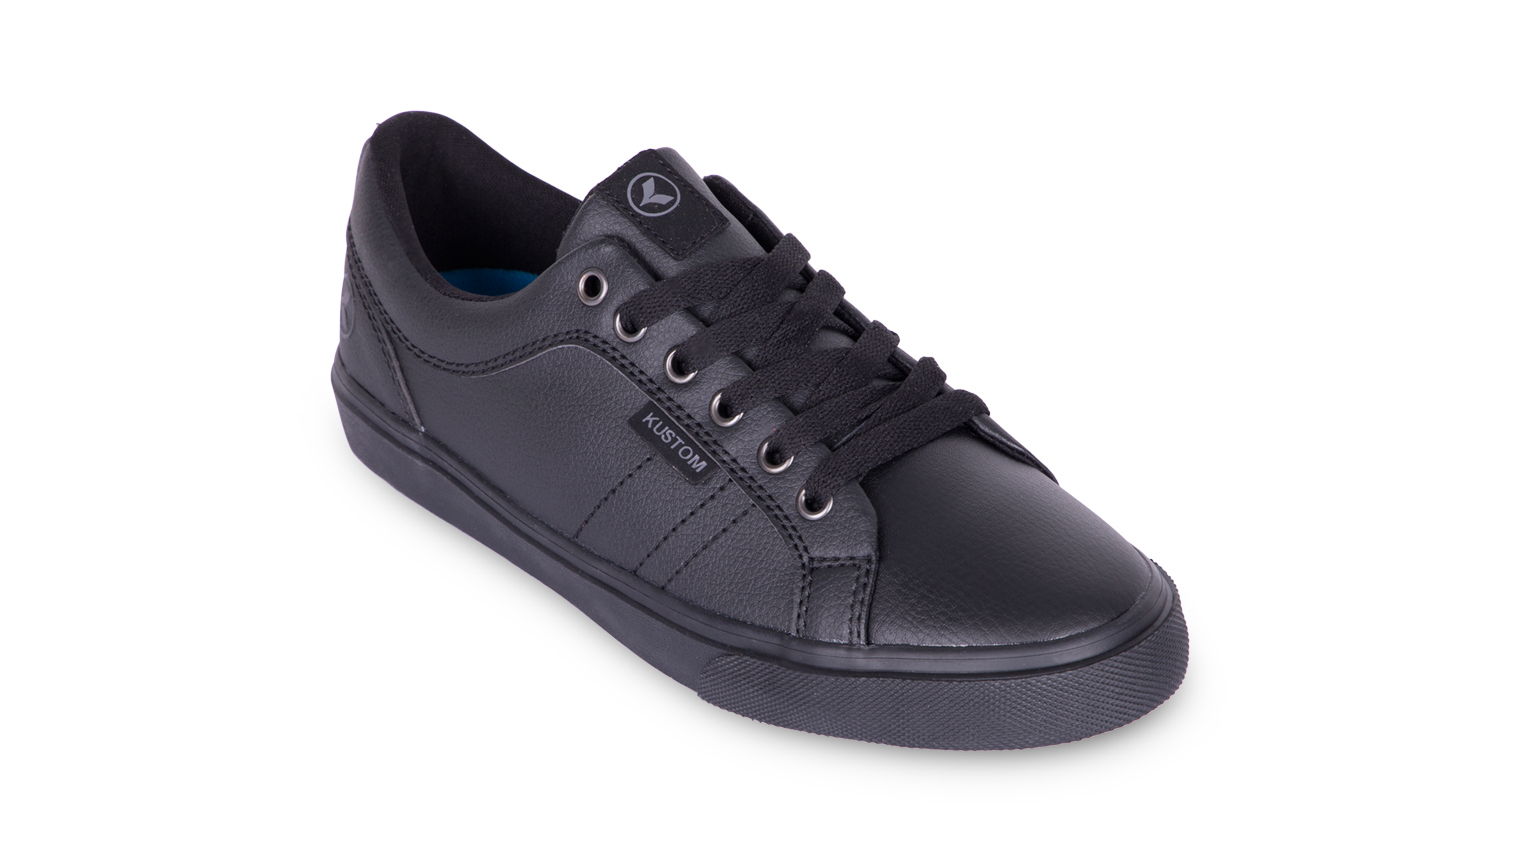 KUSTOM SHOES BOYS HIGHLINE CLASSIC SHOE / BLACK LEATHER